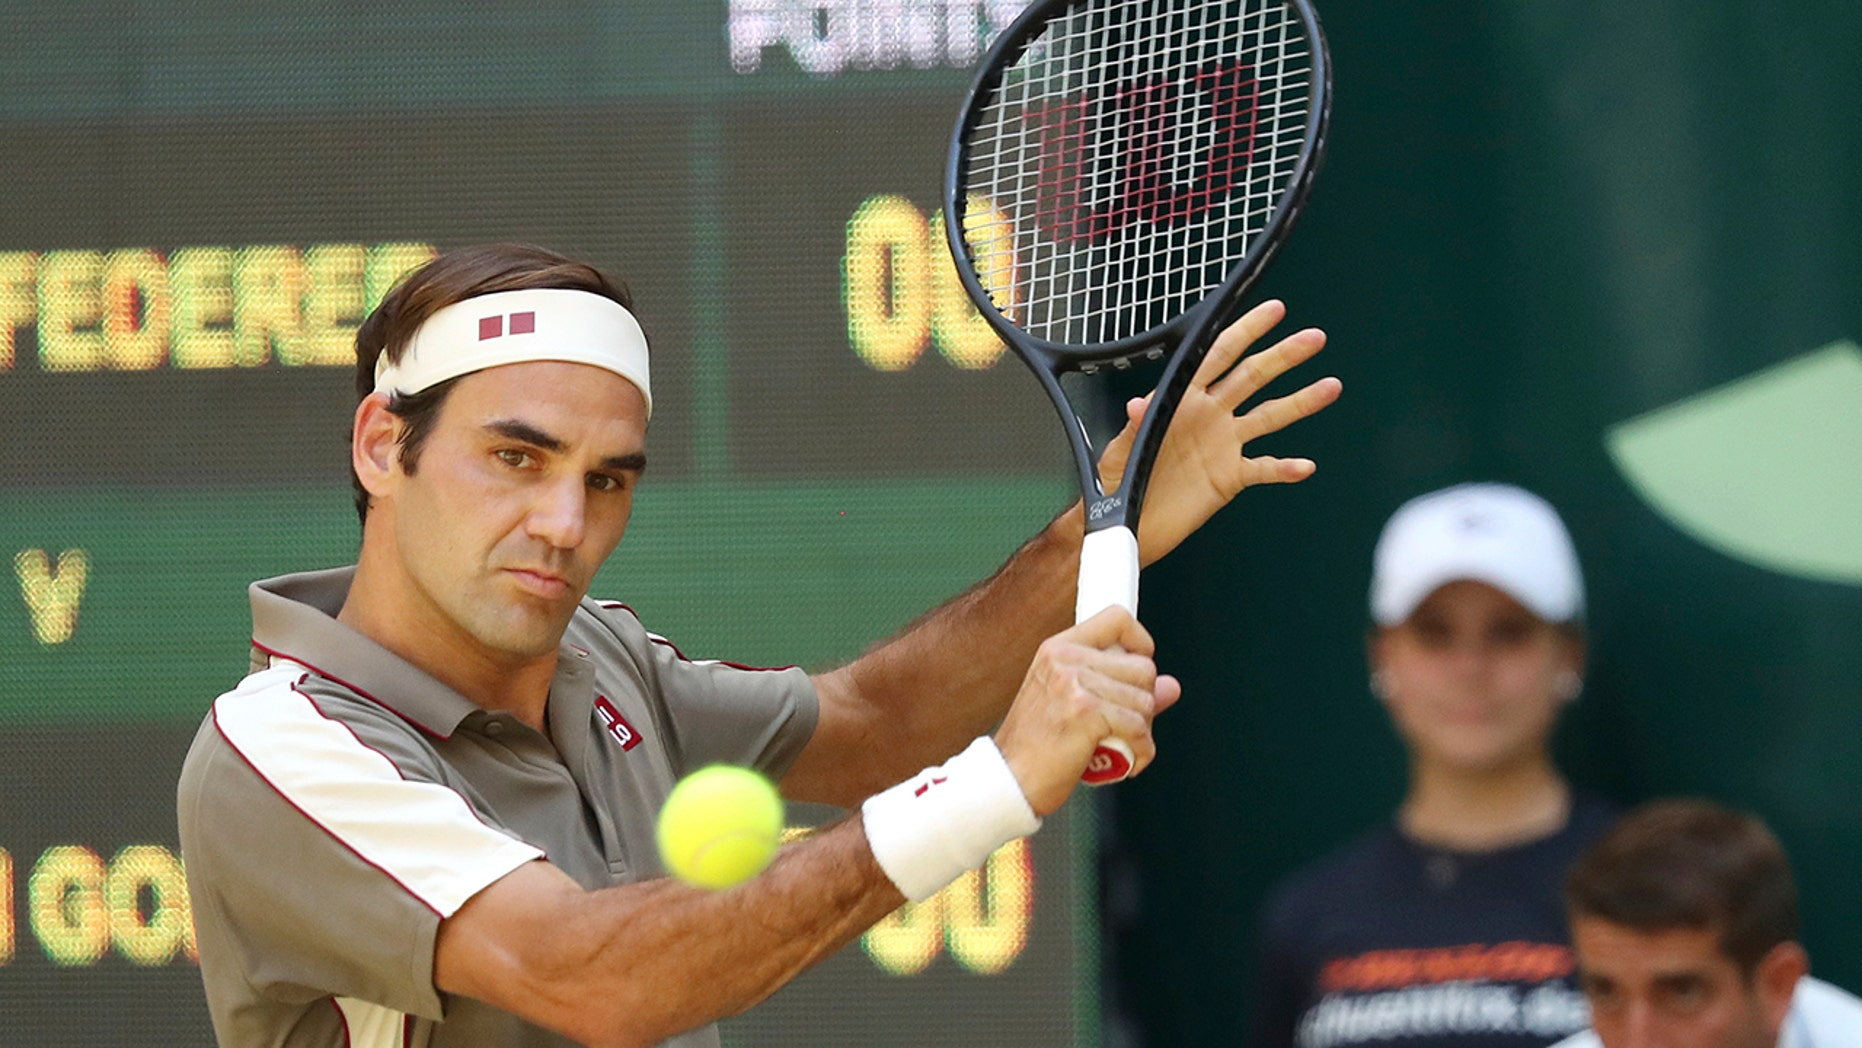 Swiss Roger Federer hits a backhand in the tennis ATP final against Belgium David Goffin in Halle, Germany, Sunday, June 23, 2019. (Friso Gentsch/dpa via AP)